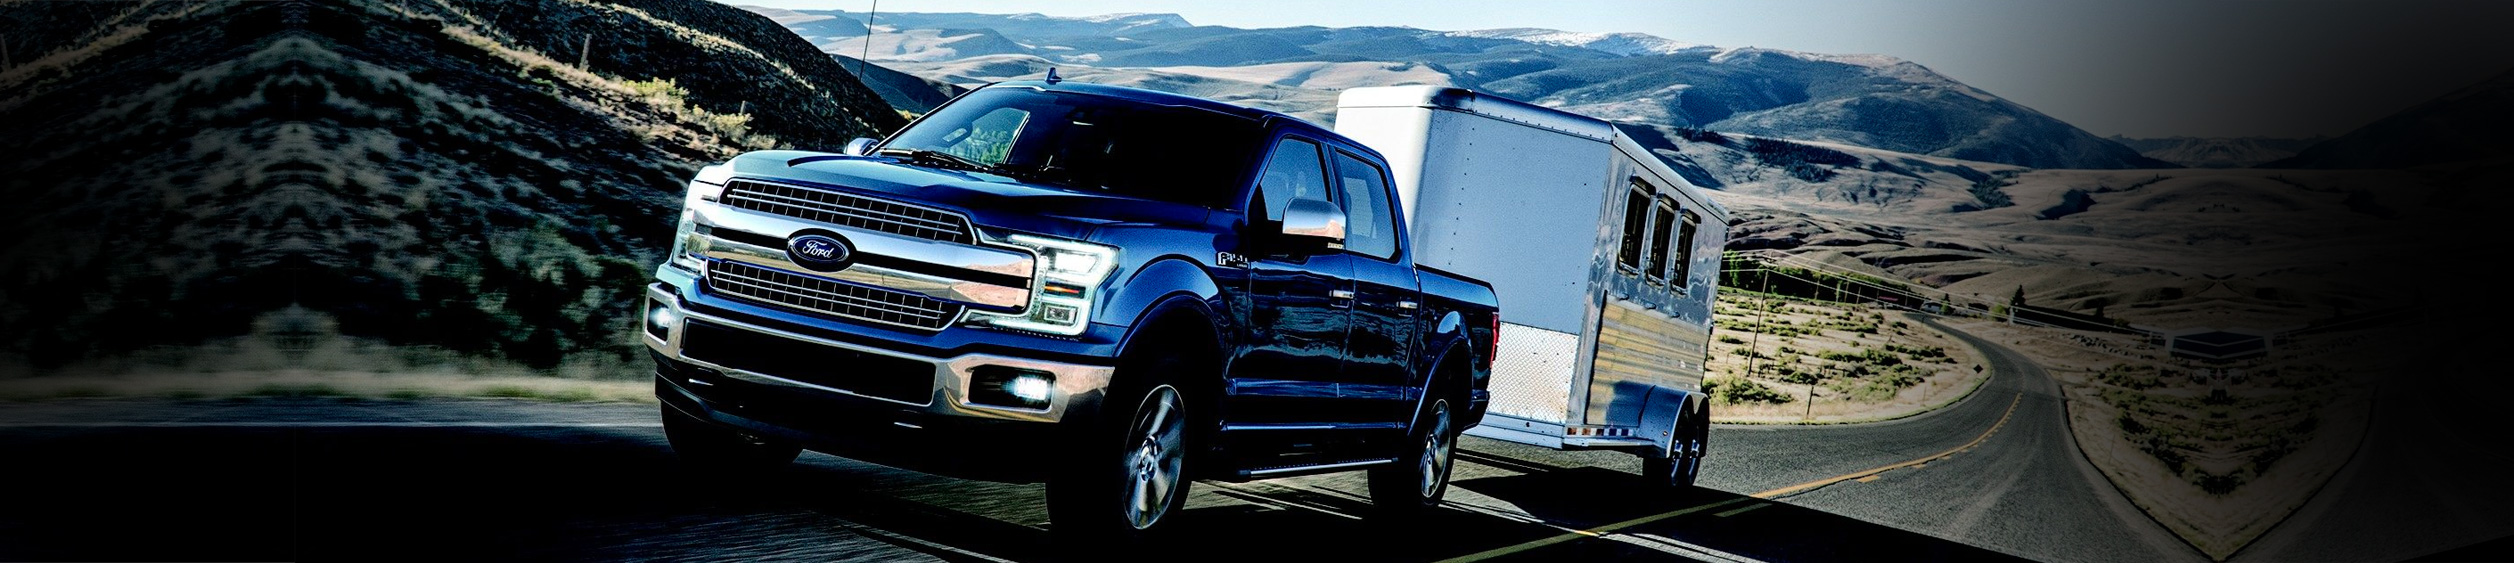 Create Your Custom Built Truck with Aurora Ford Yellowknife!